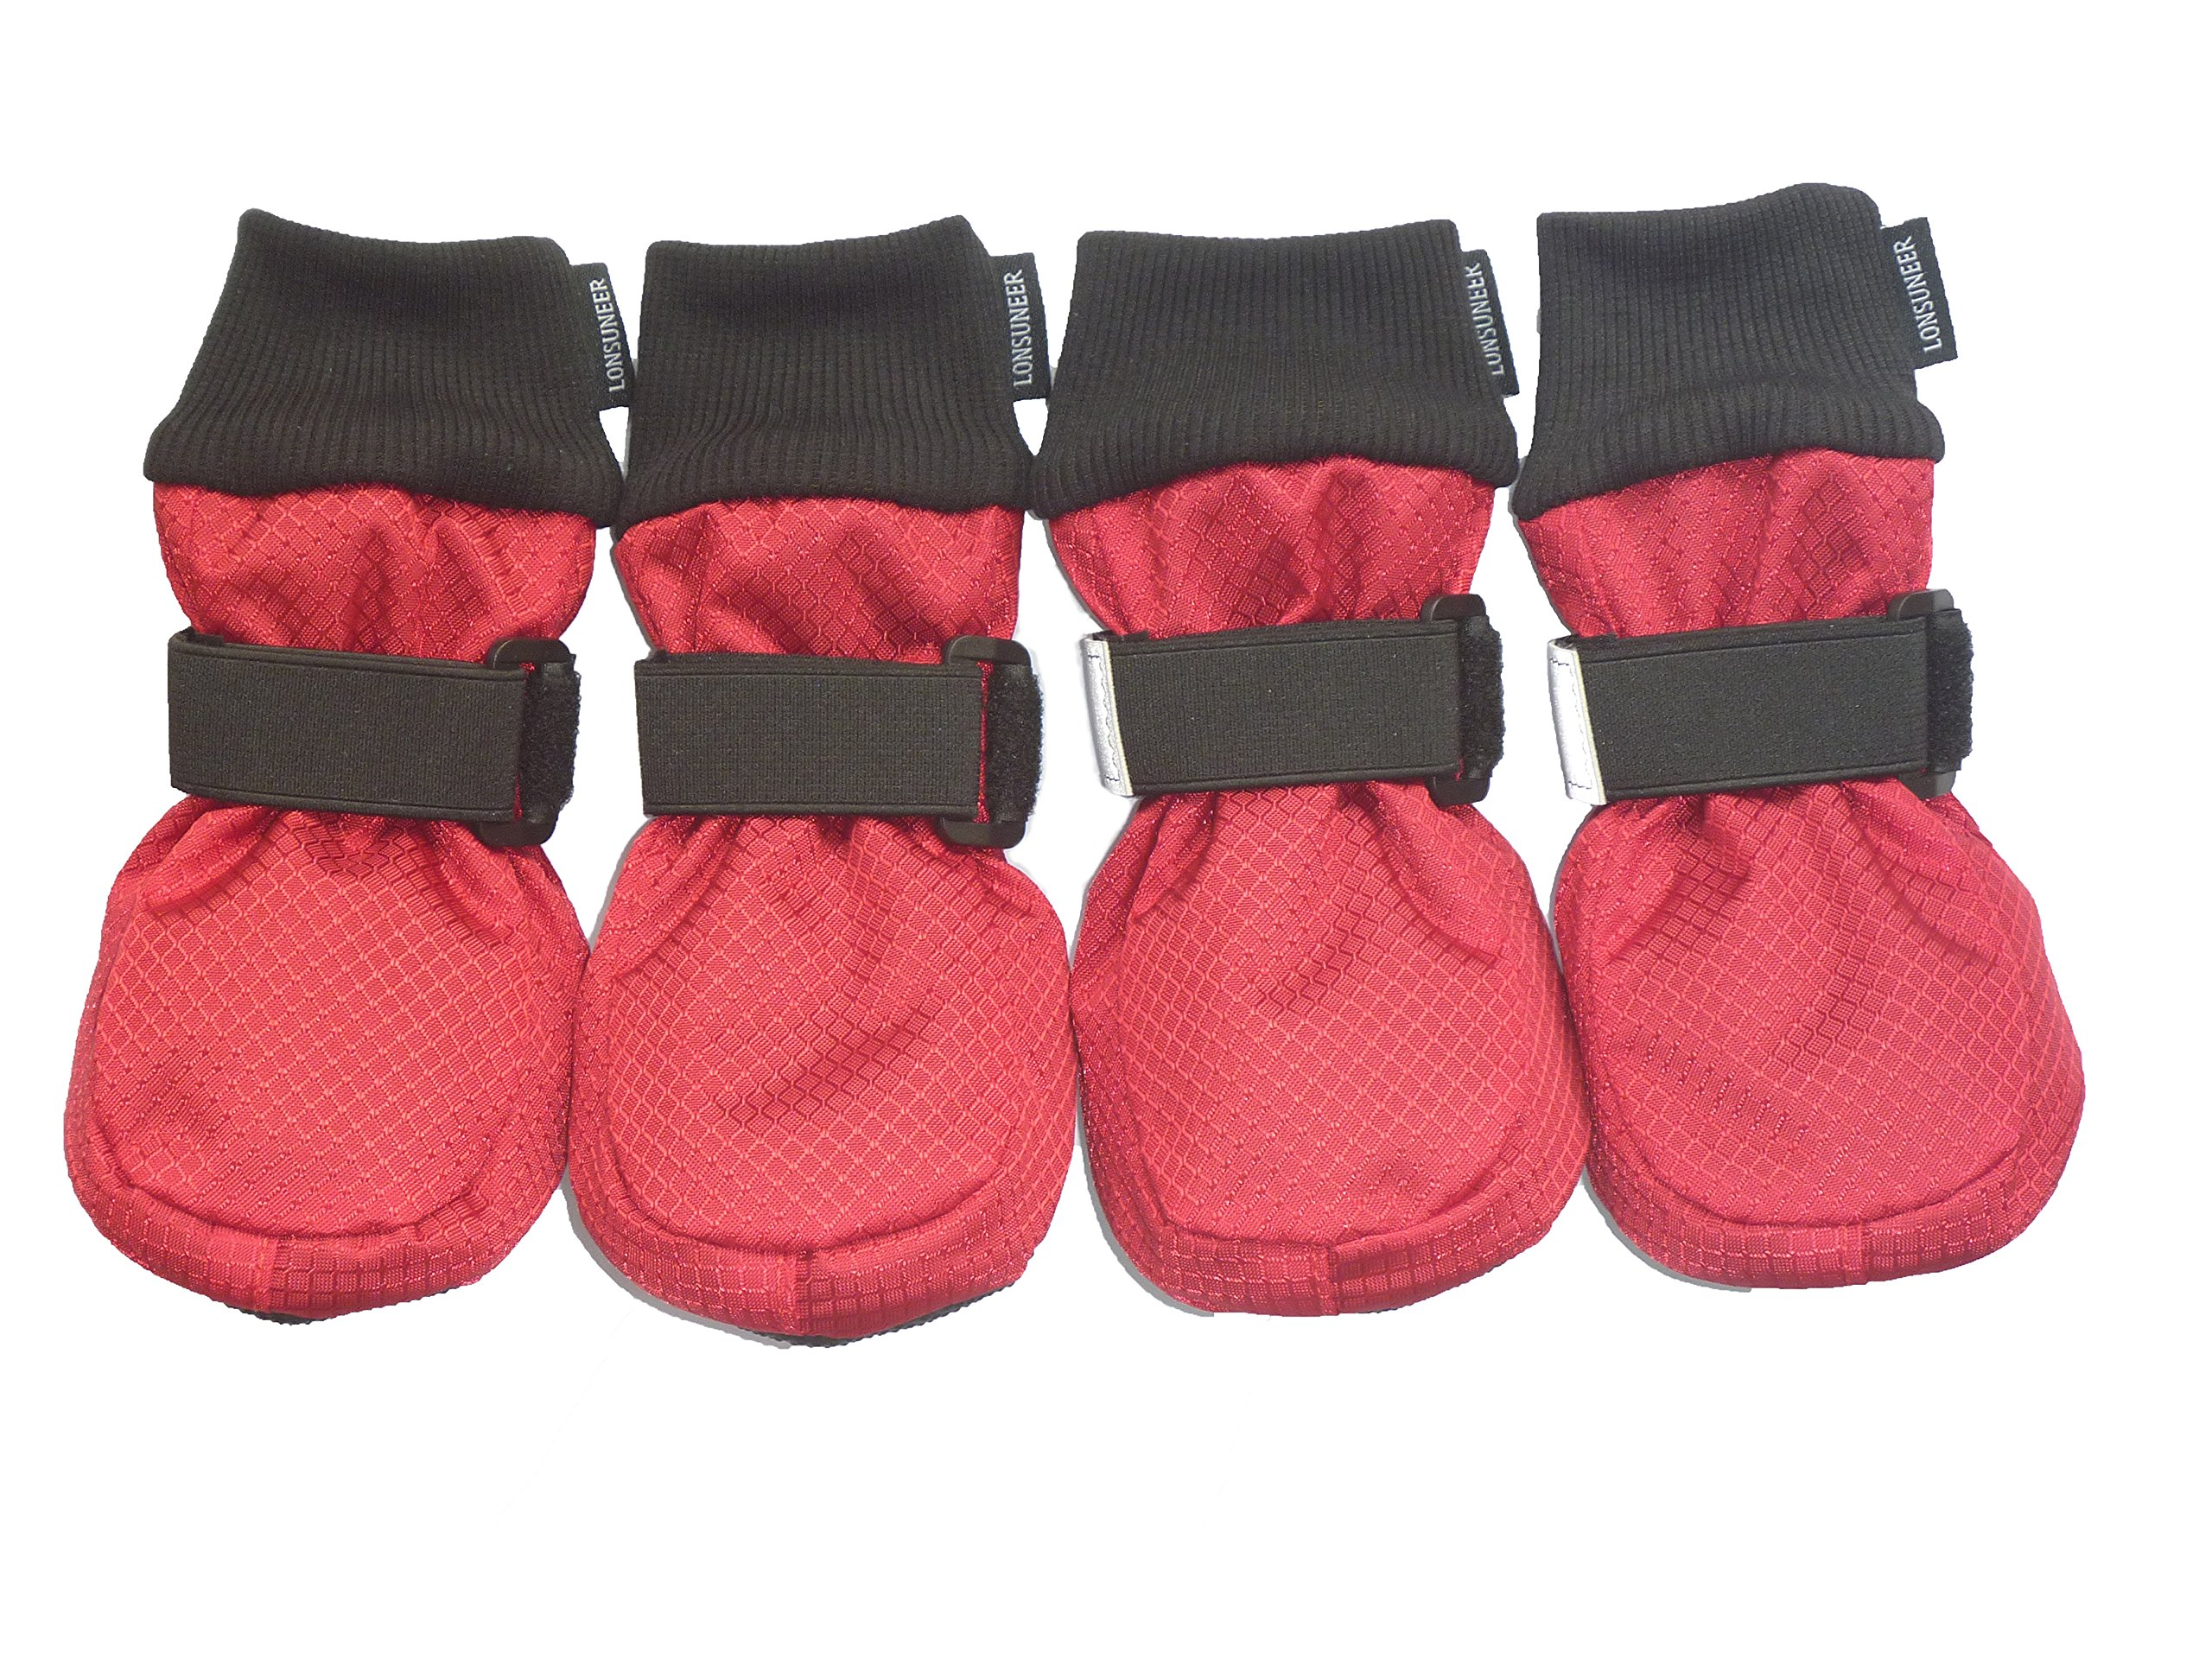 LONSUNEER Winter Paw Protector Dog Boots Waterproof Soft Sole and Nonslip Set of 4 Color Red Size XL